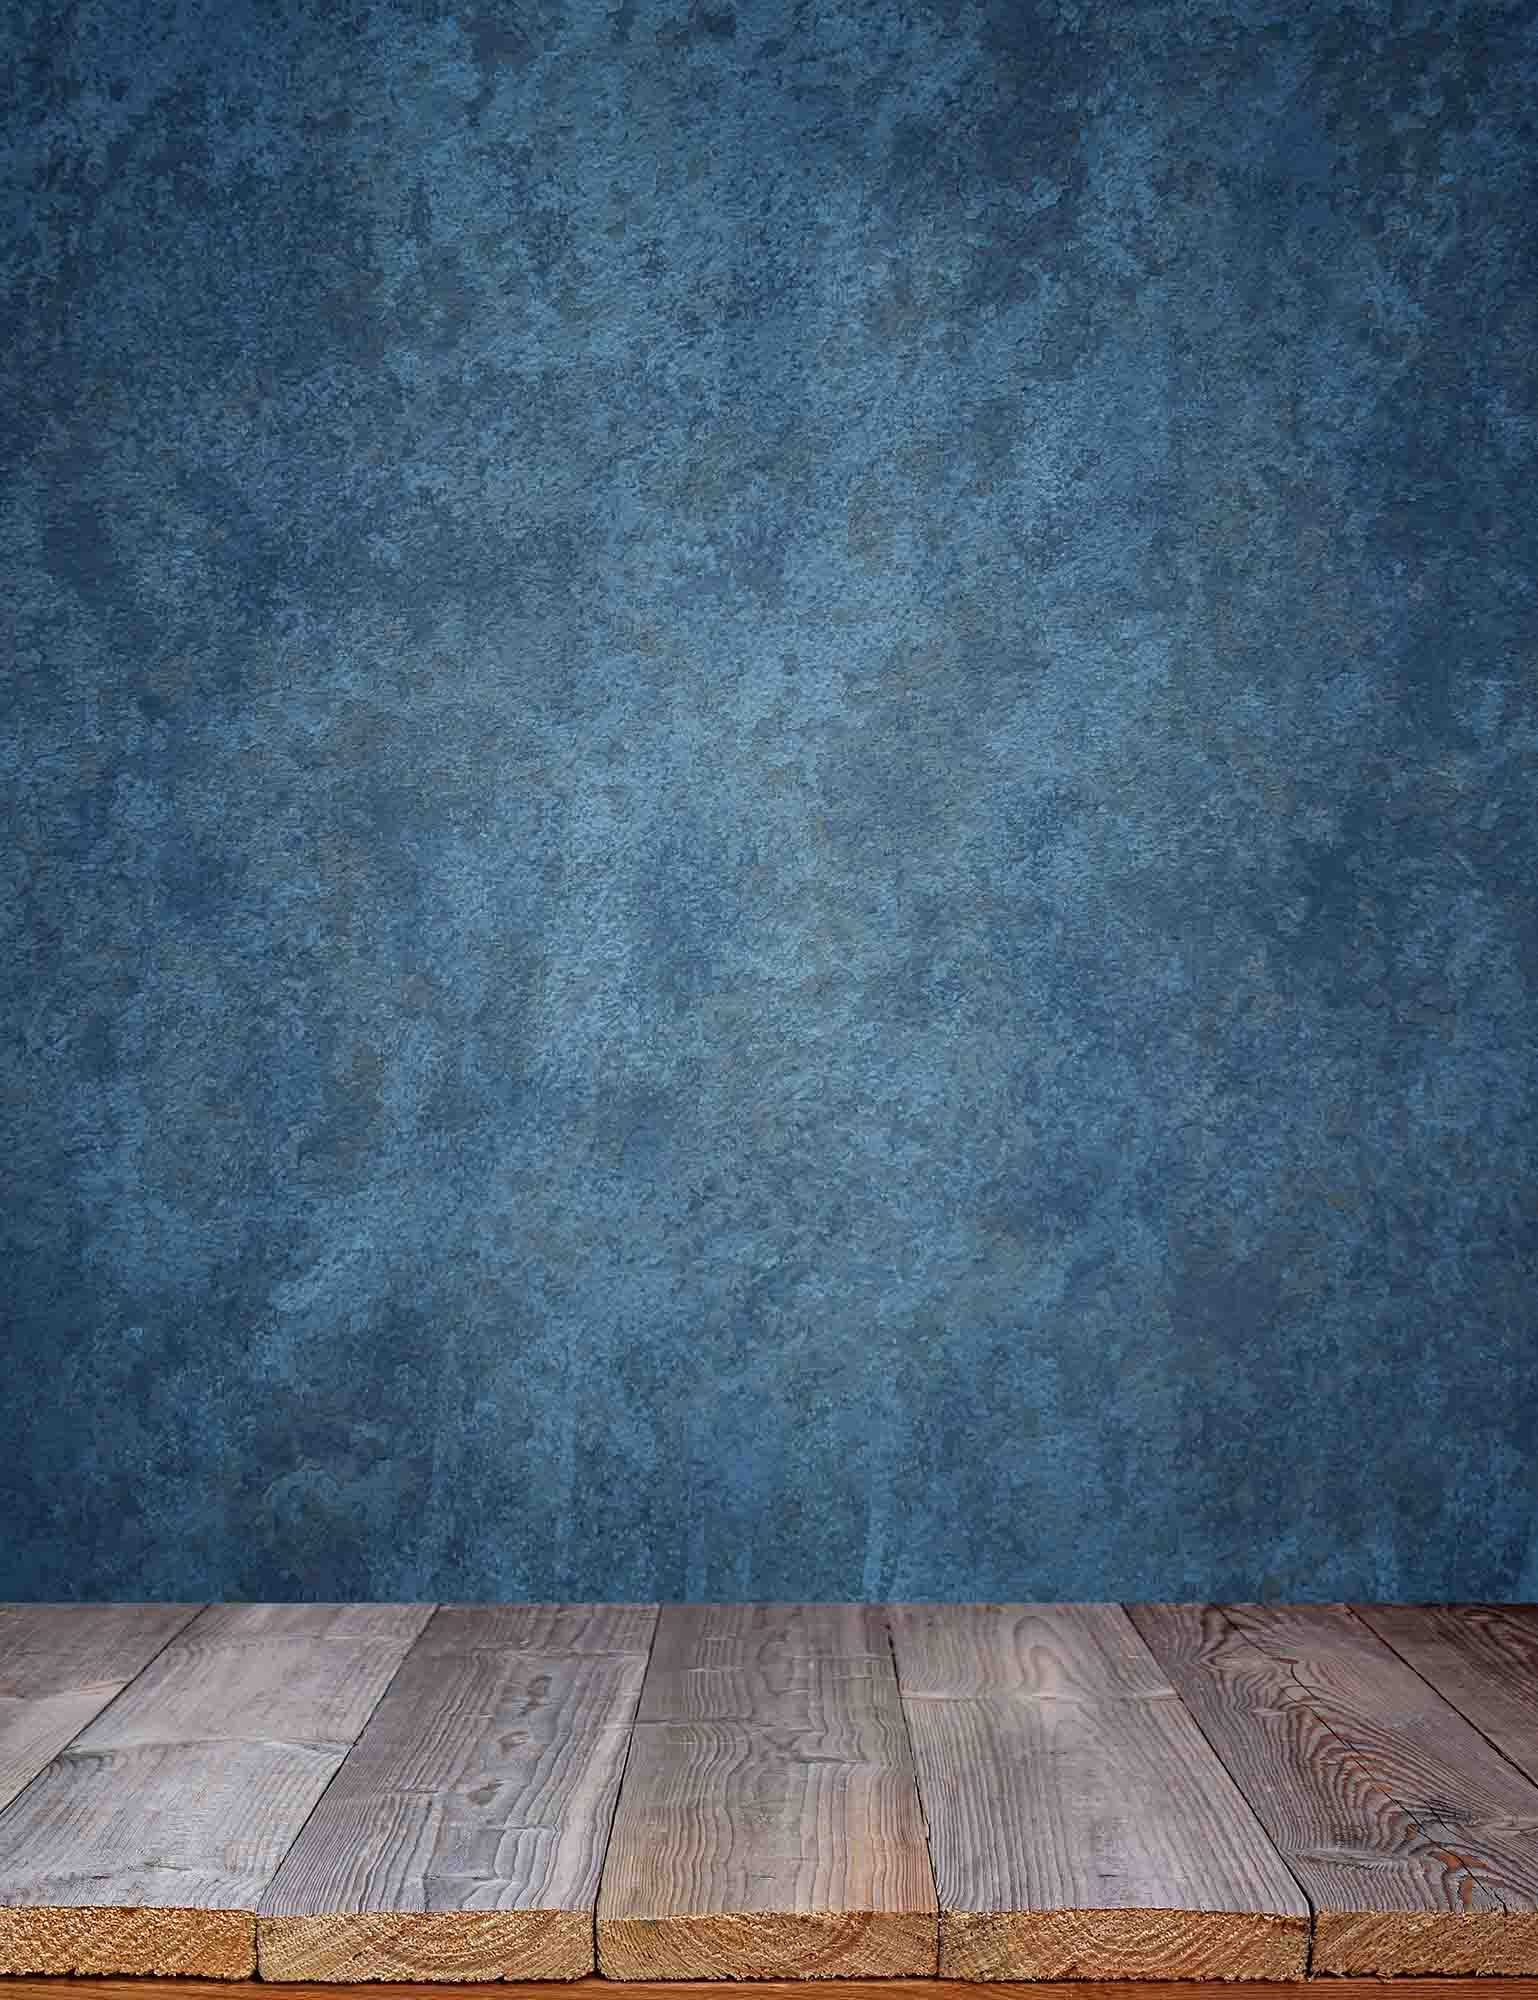 Old Master Marine Blue Background Wall With Wood Floor